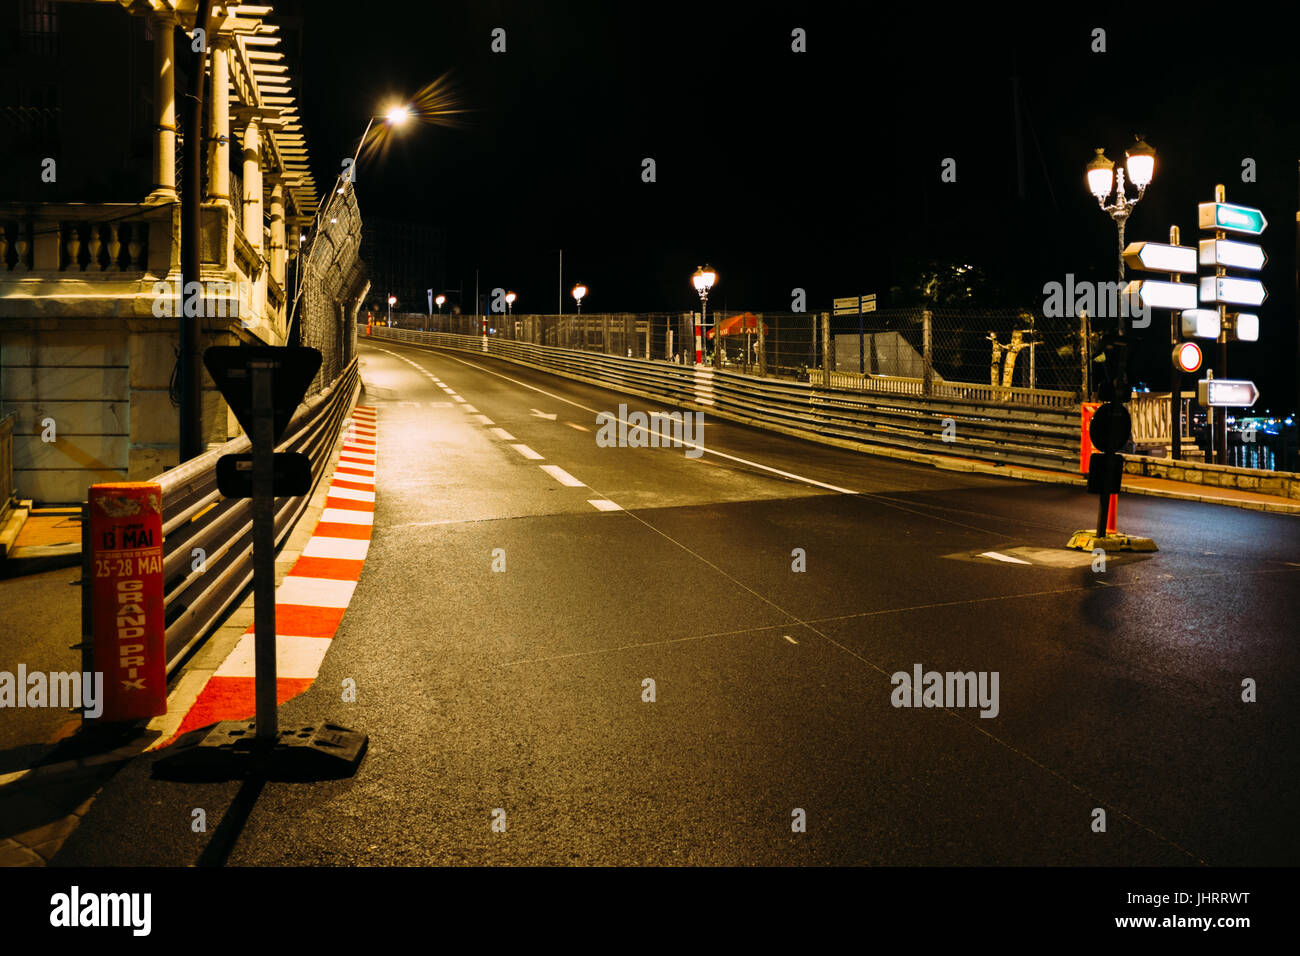 The streets of Monte Carlo, the night before the big Formula 1 race. - Stock Image